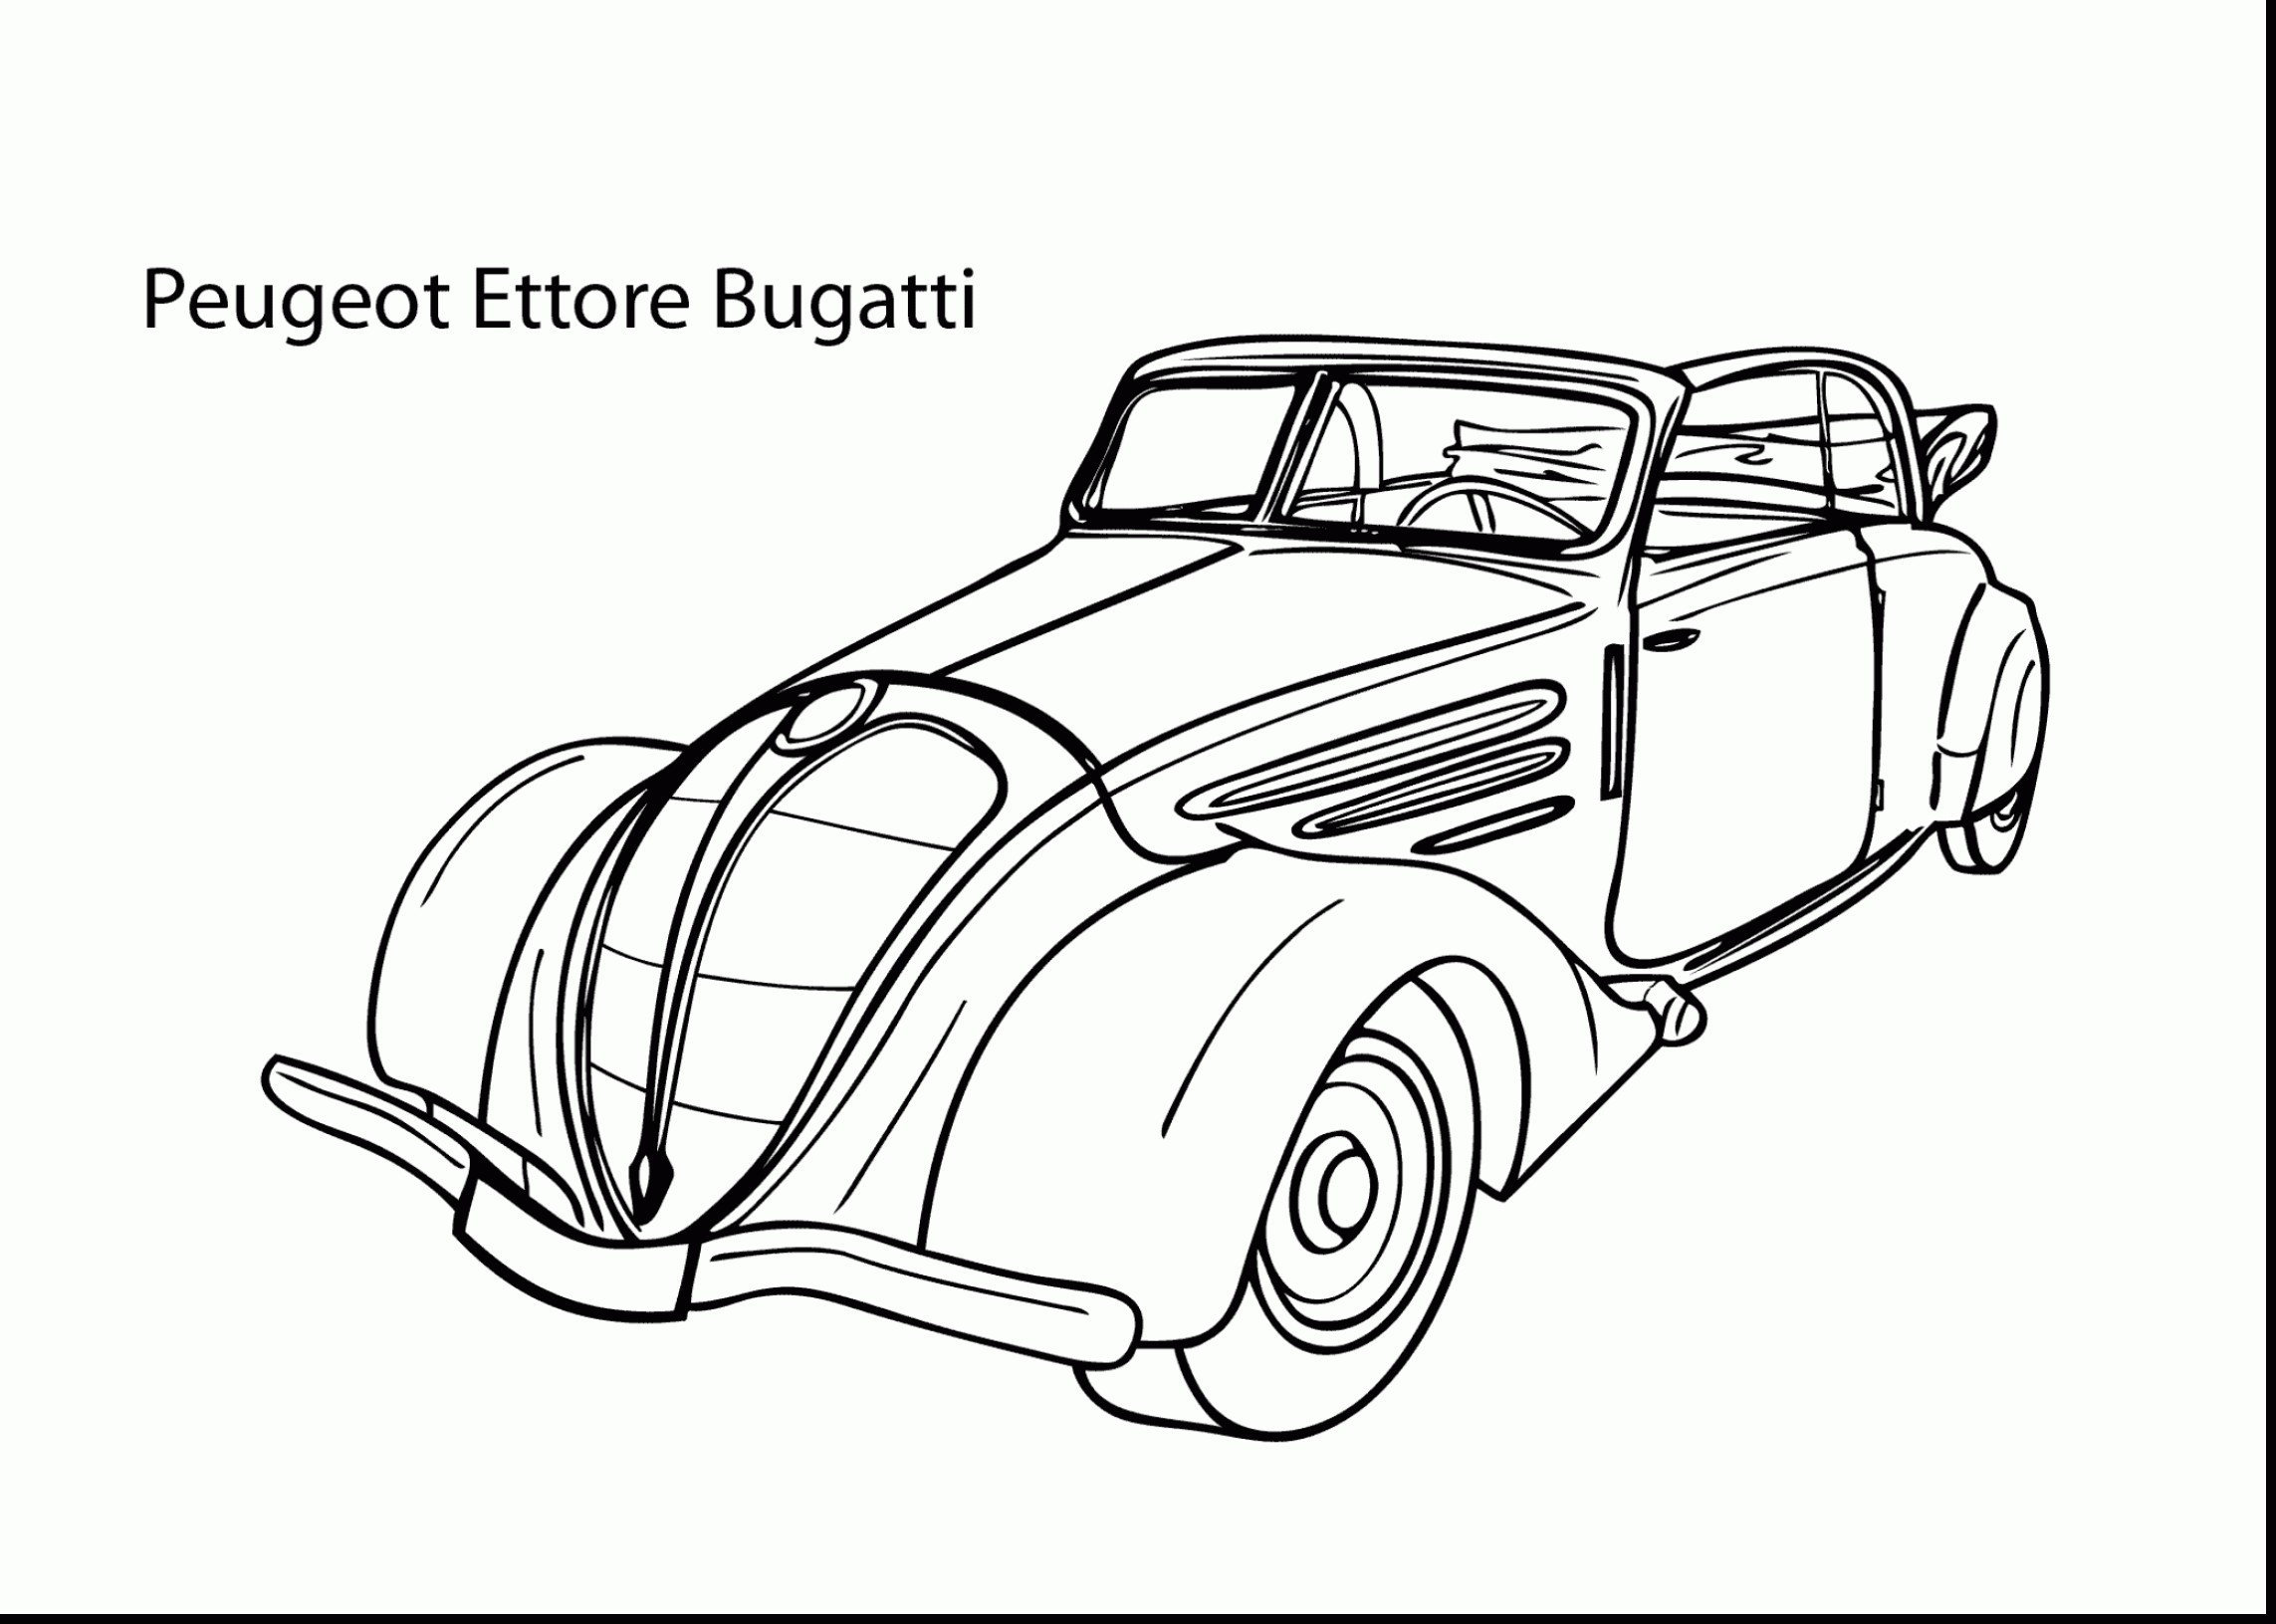 Ausmalbilder Autos Bugatti : Ferrari Drawing At Getdrawings Com Free For Personal Use Ferrari